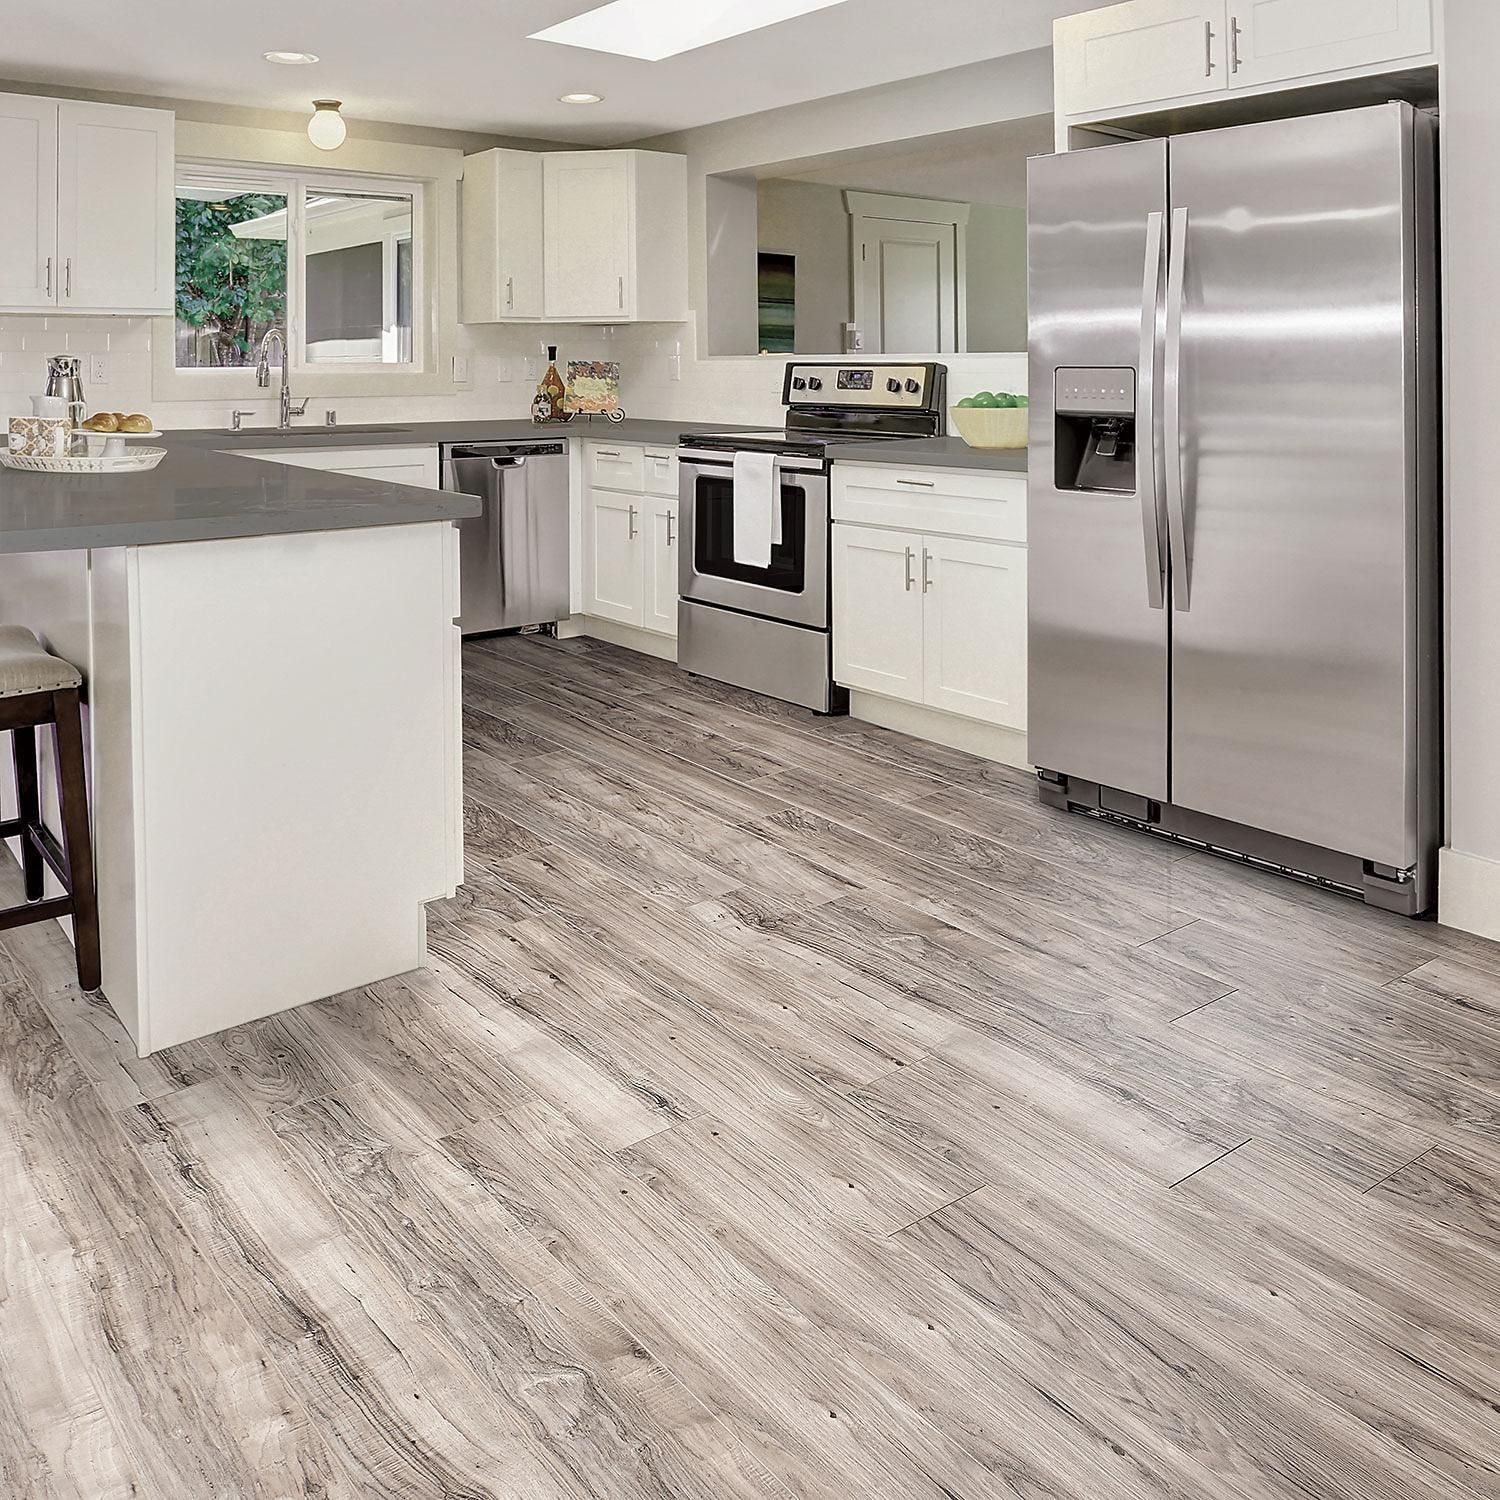 Select Surfaces Southern Gray Spill Defense Laminate Flooring Sam S Club Grey Laminate Flooring Flooring Kitchen Flooring